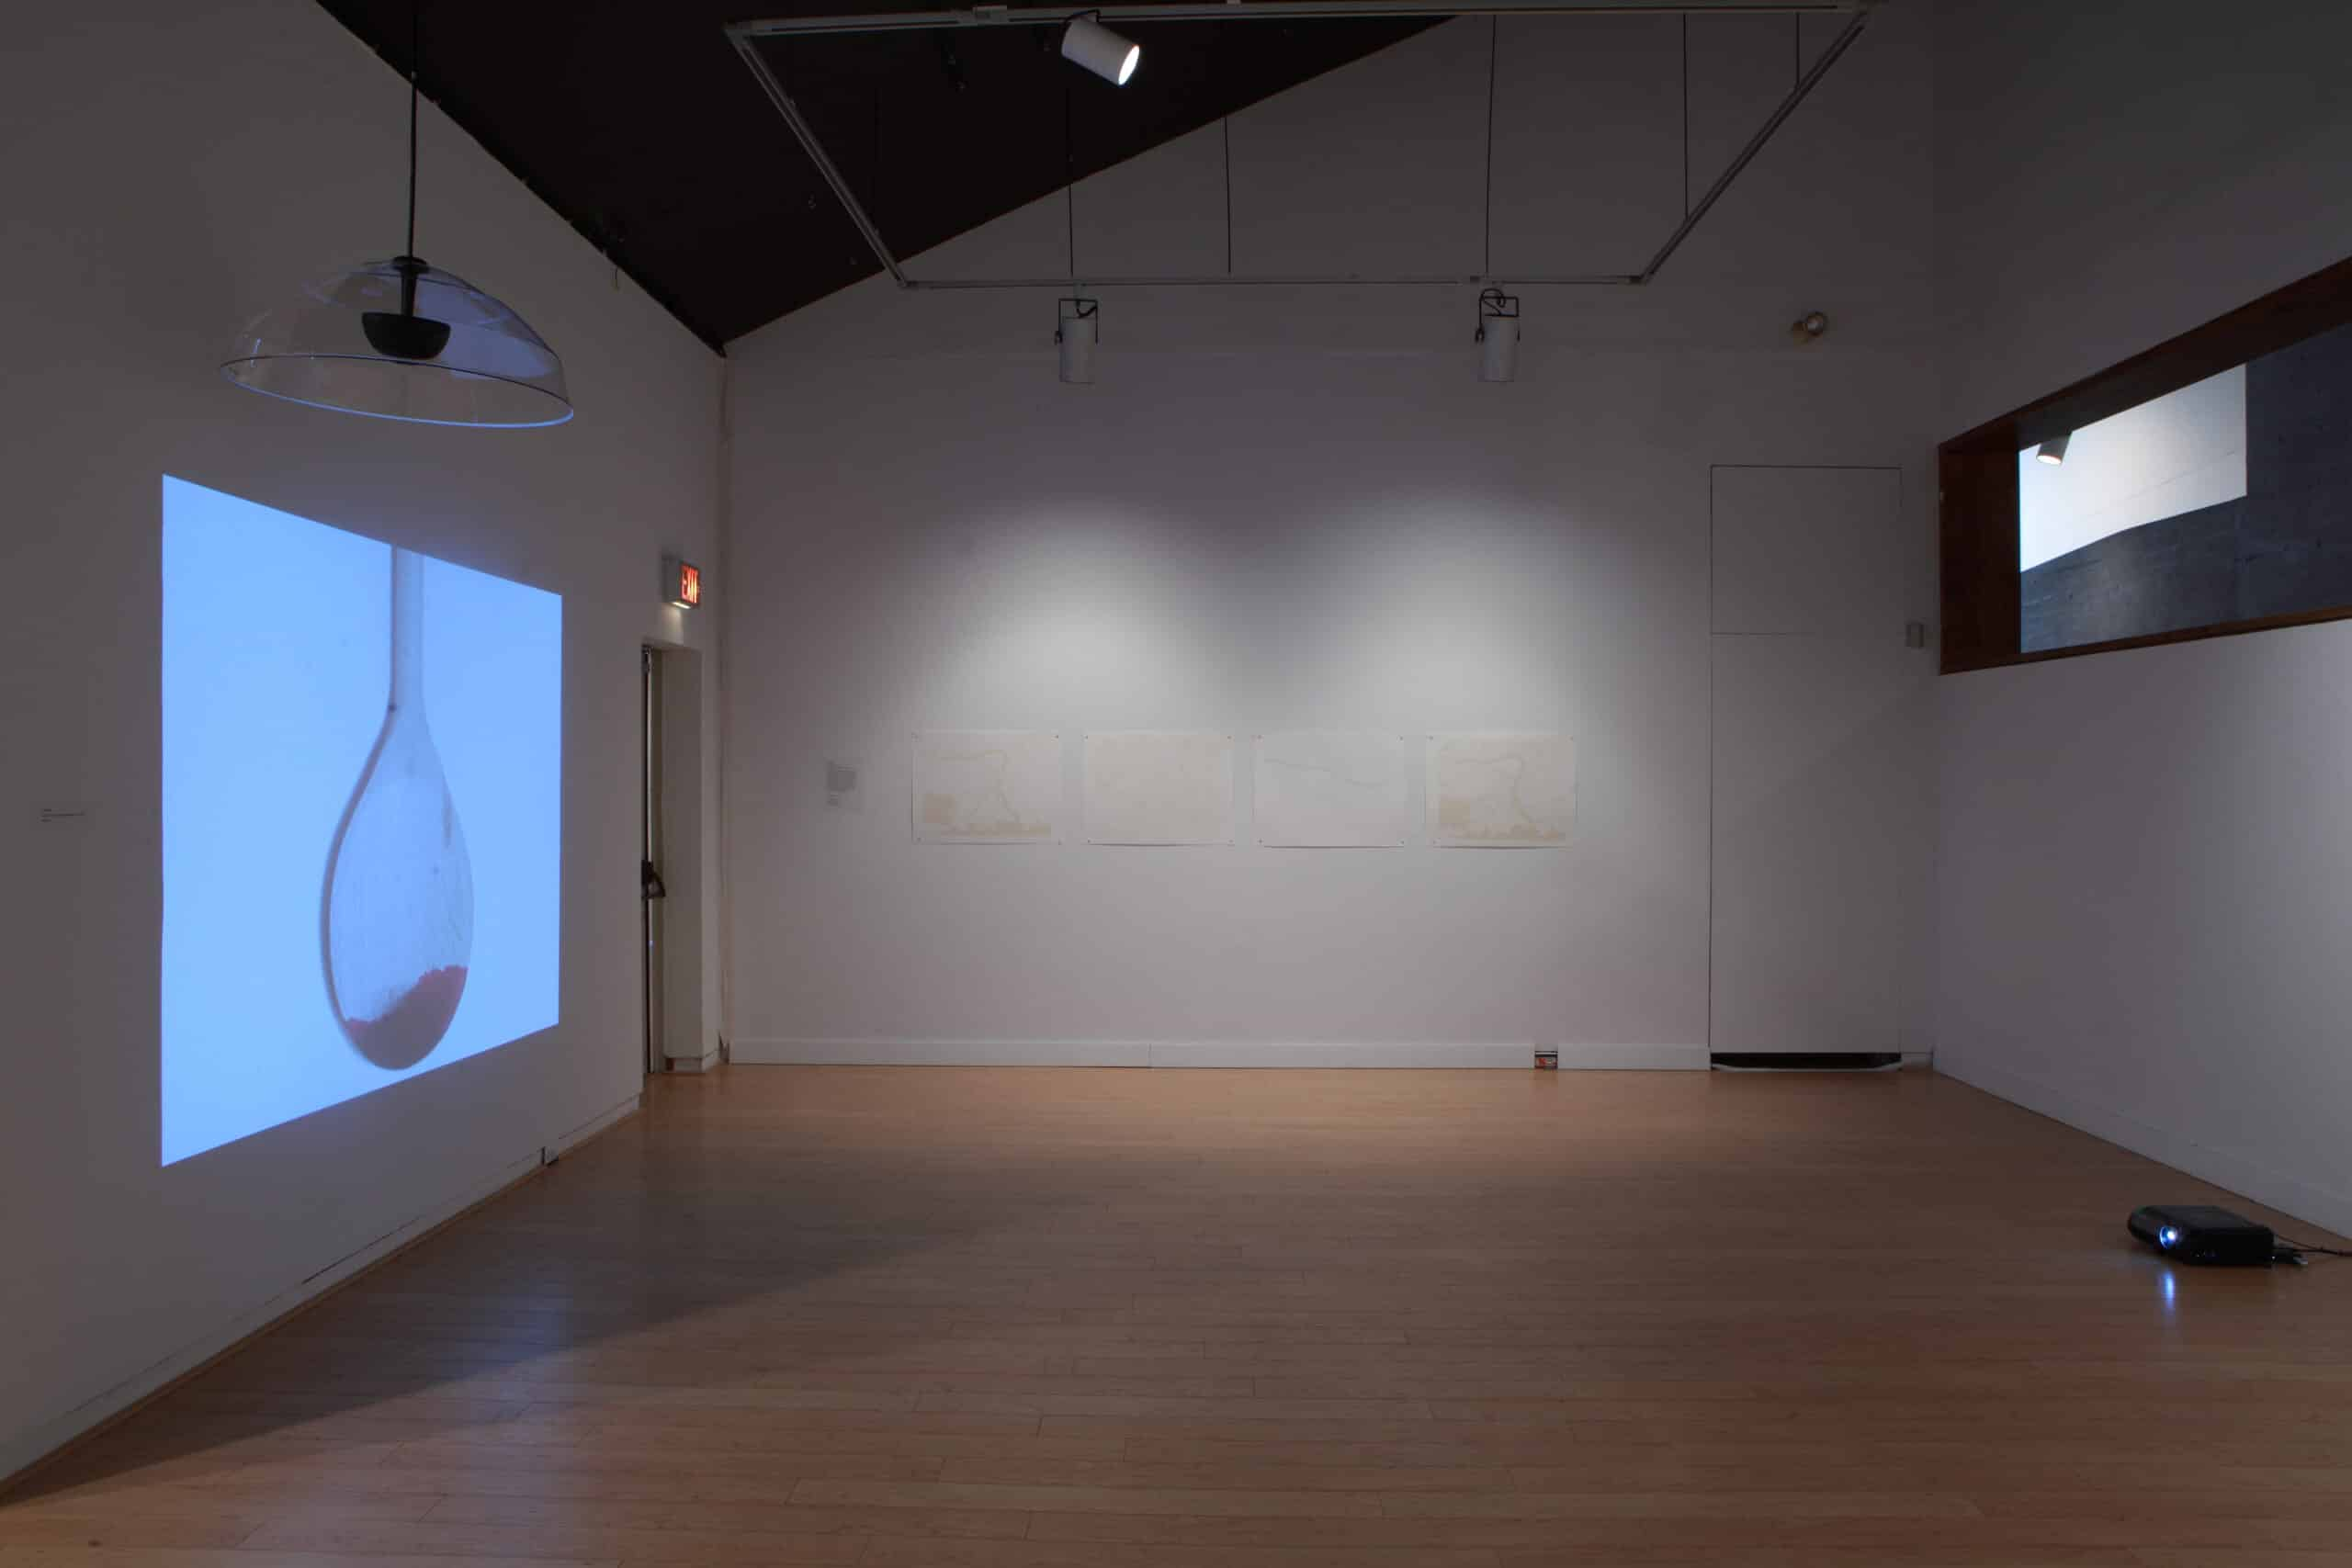 Lisa Myers, installation view